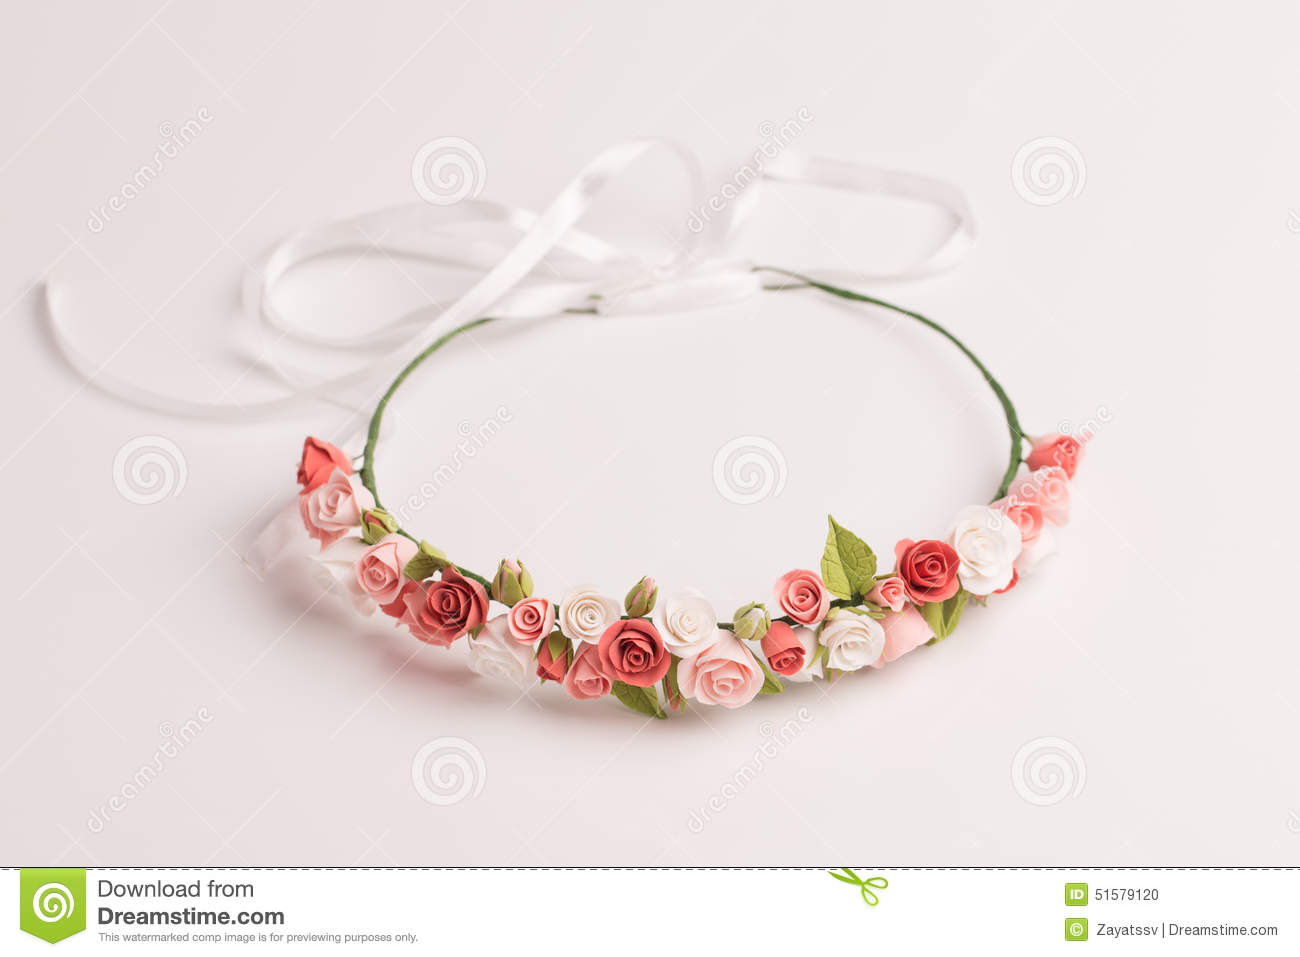 Tiara with handmade flowers on a white background stock photo image 51579120